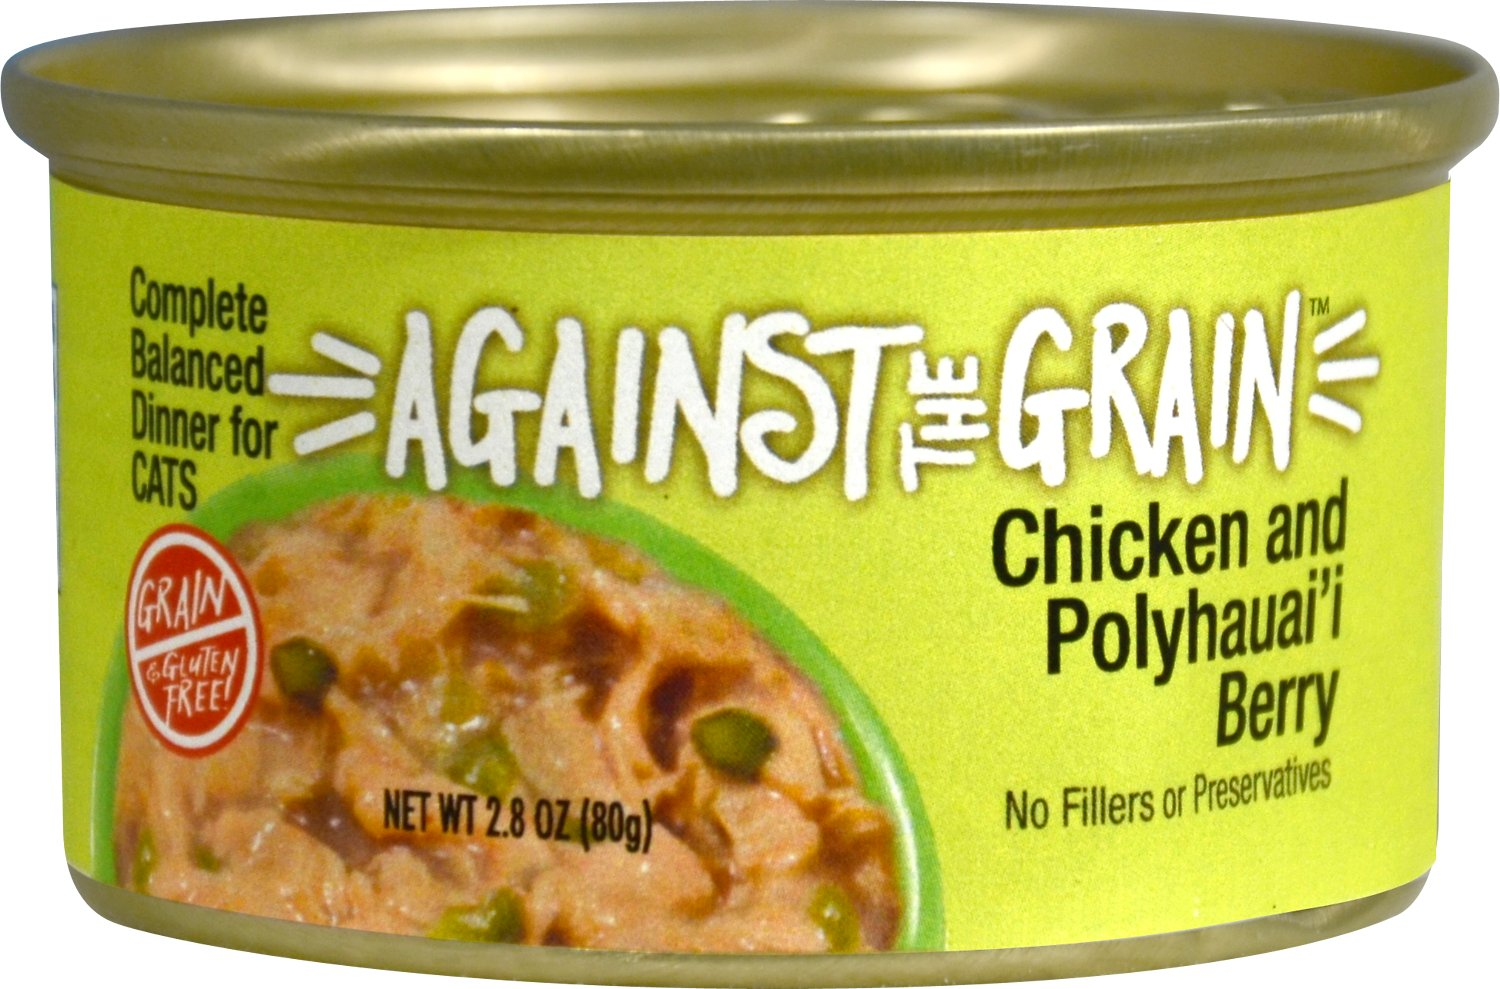 Against the Grain Chicken & Polyhauai'i Berry Dinner Grain-Free Wet Cat Food, 2.8-oz